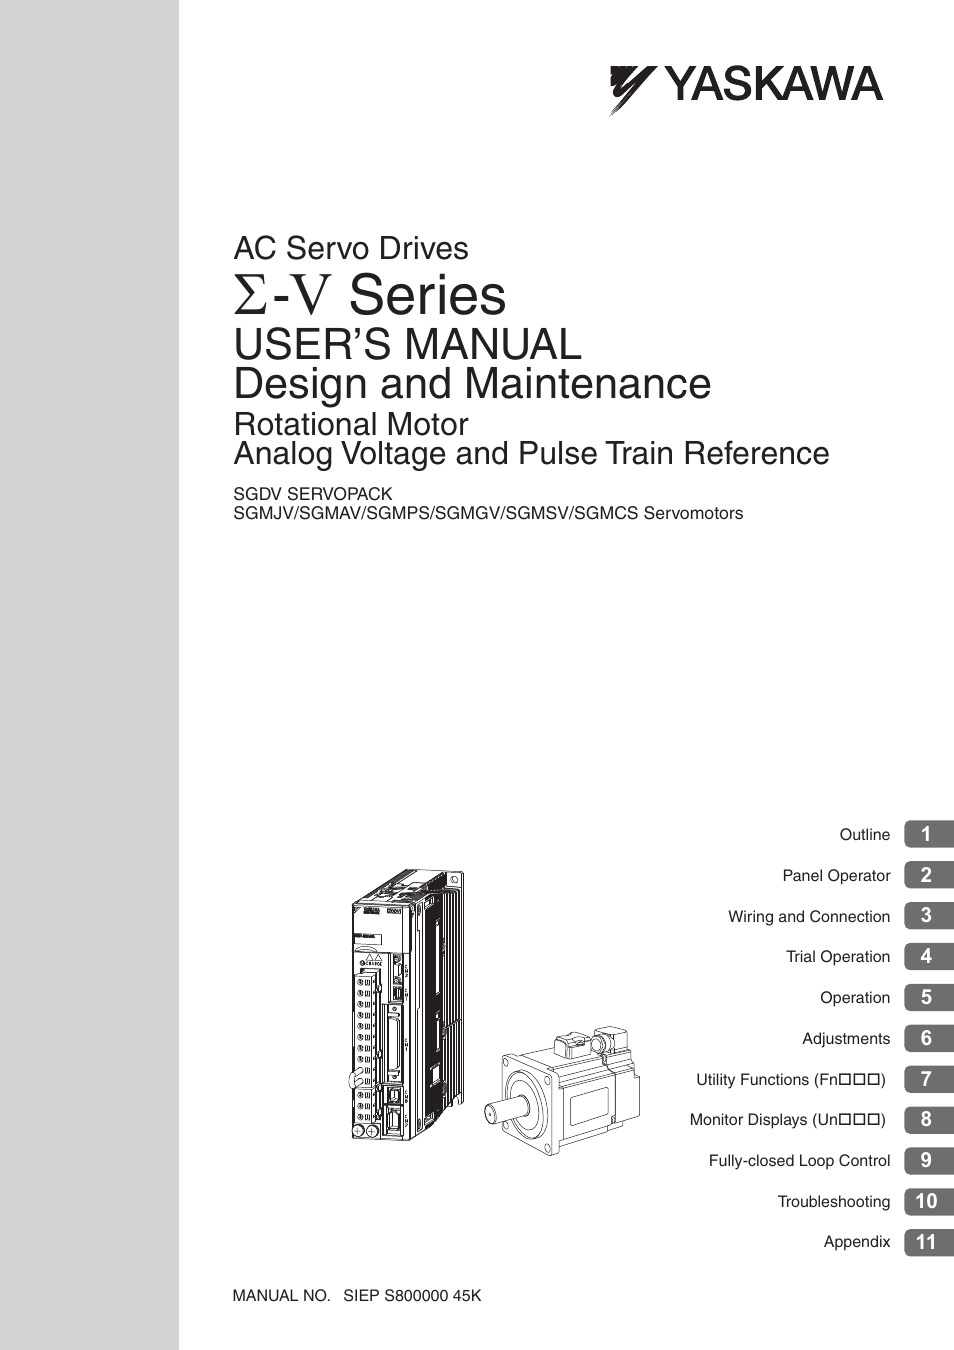 Yaskawa Sigma-5 User Manual: Design and Maintenance